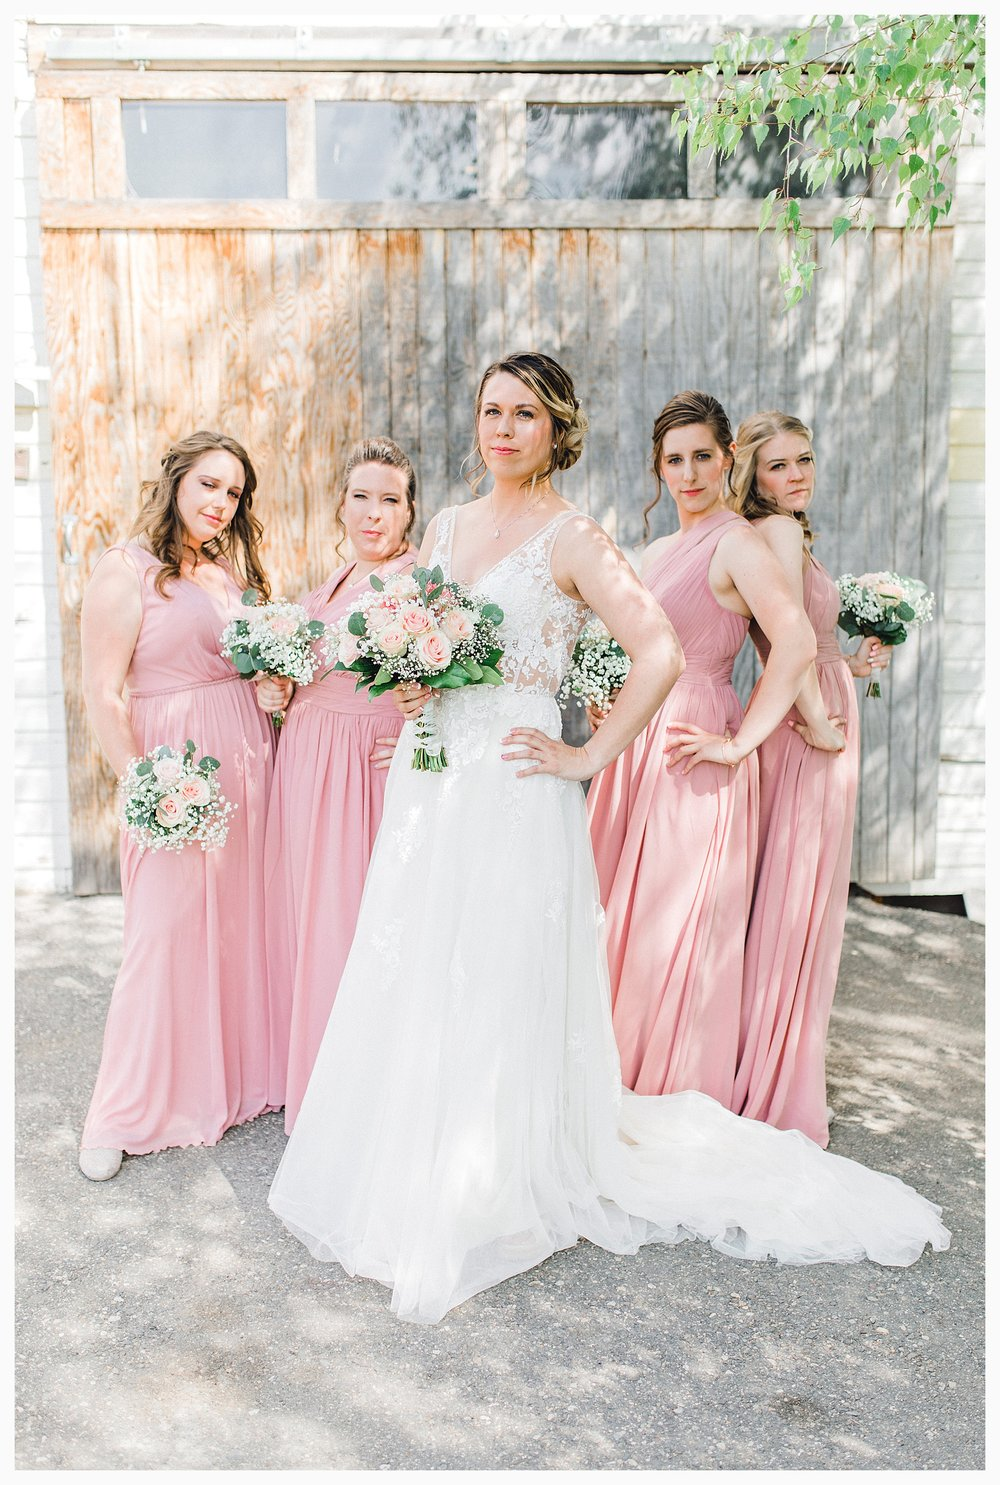 Rustic barn wedding in Wenatchee Washington at Sunshine Ranch on Easy Street, Emma Rose Company Seattle PNW Light and Airy Wedding Photographer_0050.jpg